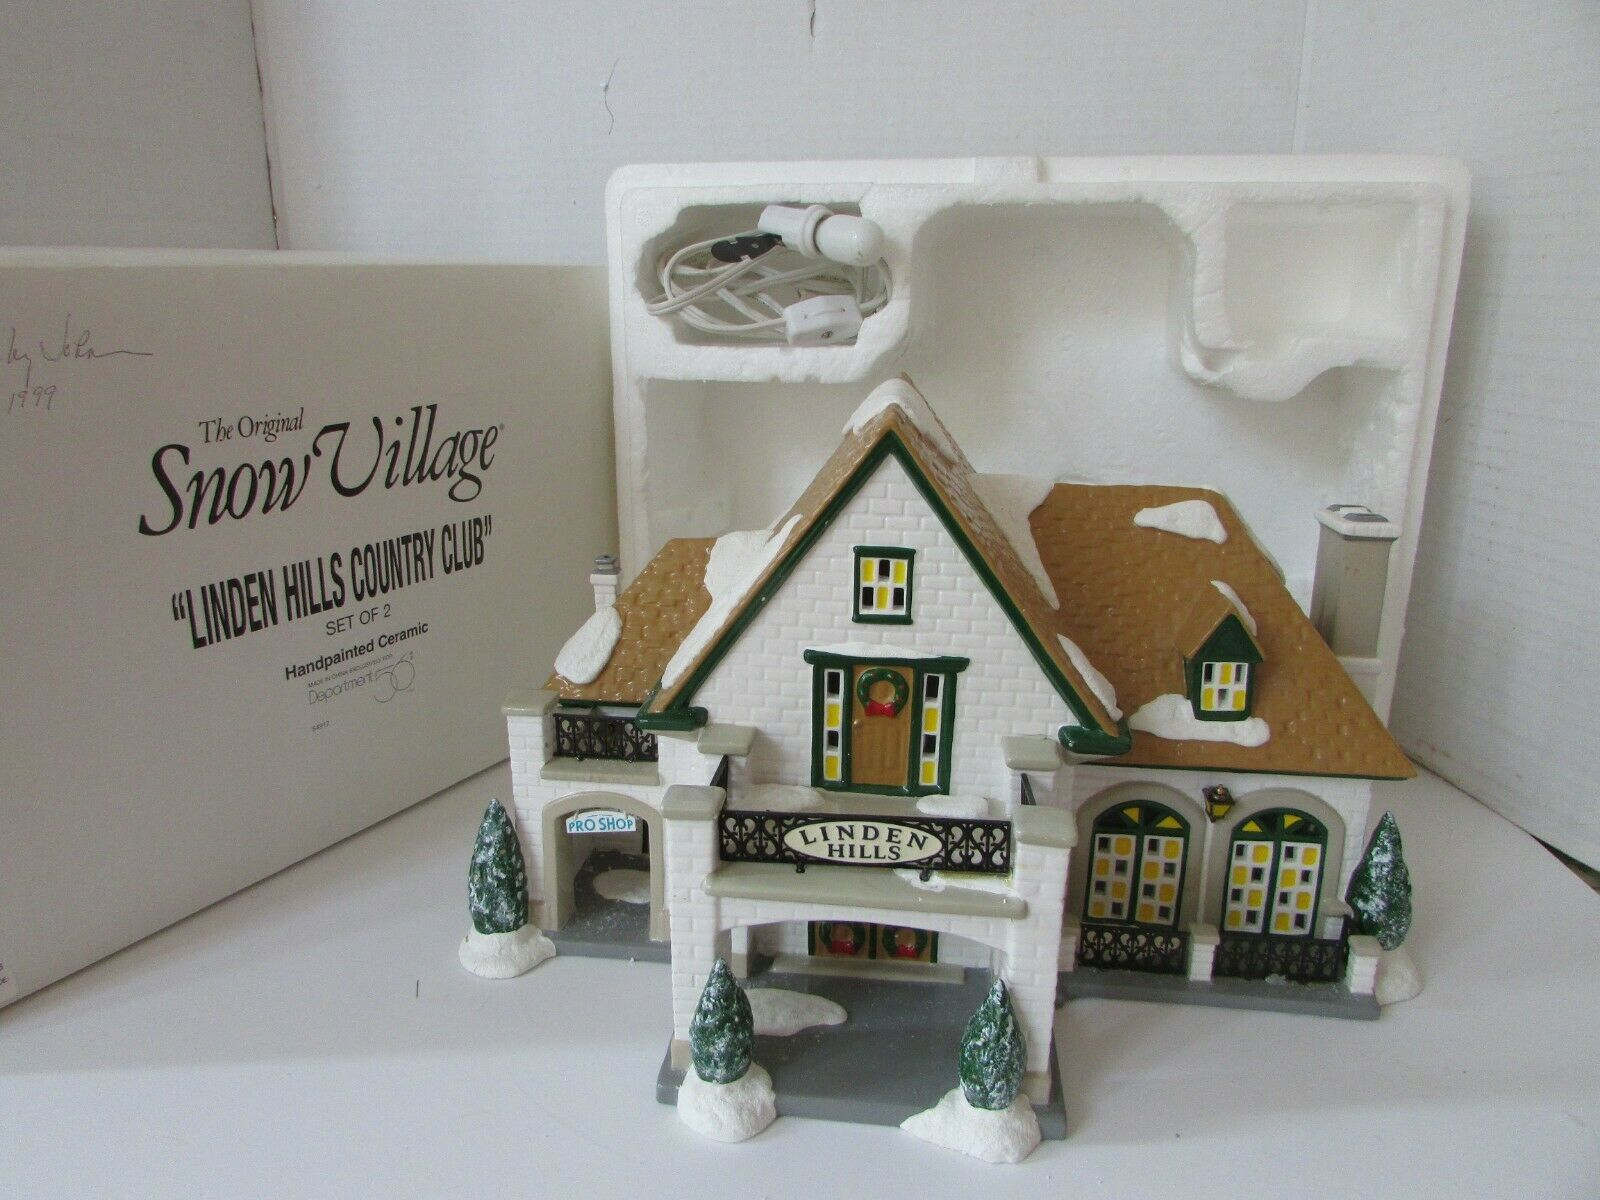 Primary image for DEPT 56 54917 LINDEN HILLS COUNTRY CLUB SET OF 2 SNOW VILLAGE LIGHTED AS IS L142